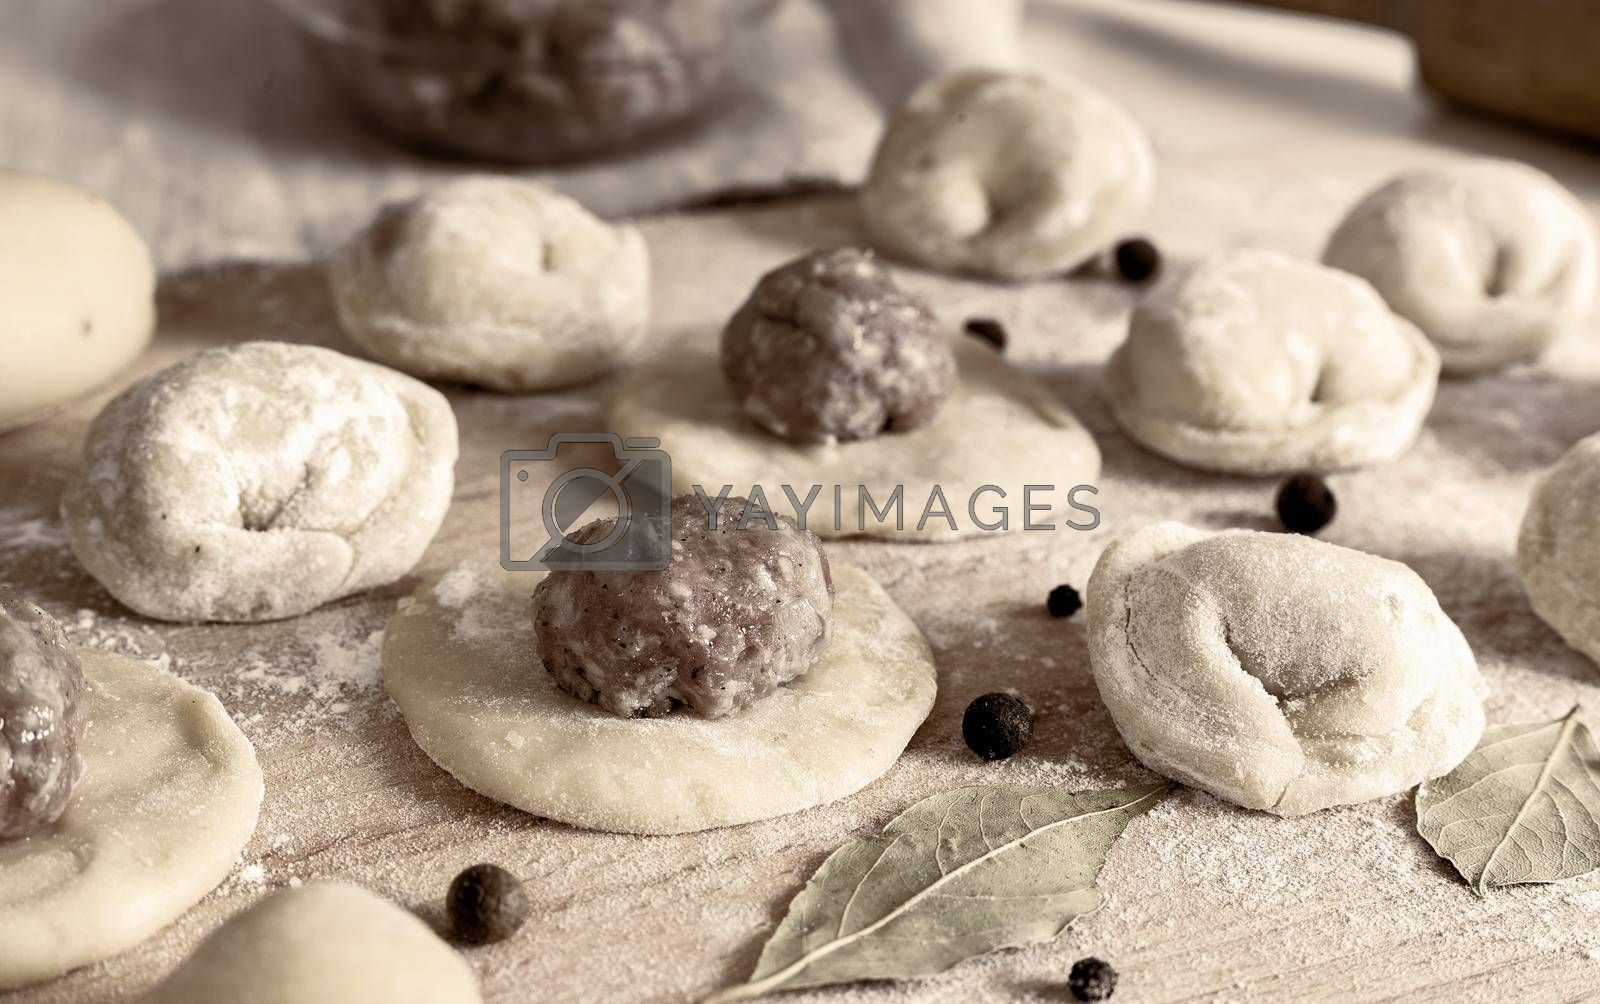 Royalty free image of Russian dumplings and components for their production by georgina198